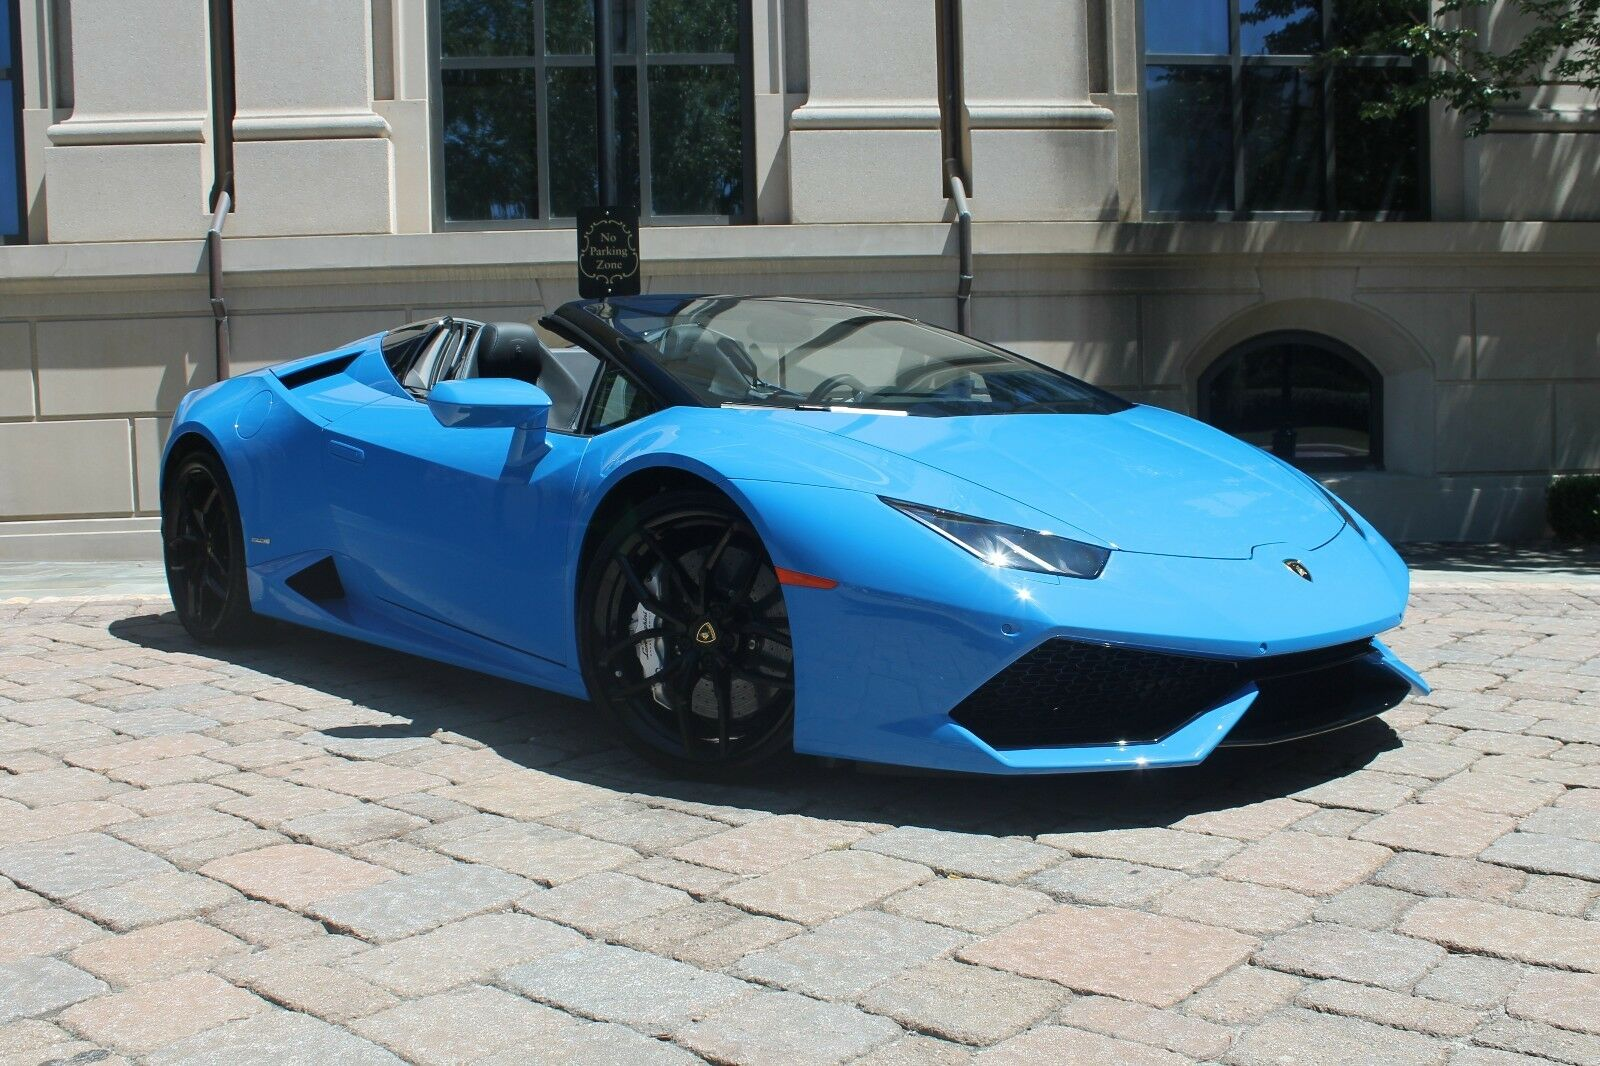 Lamborghini Huracan Spyder in RARE BLU LEMANS!! HIGH MSRP!